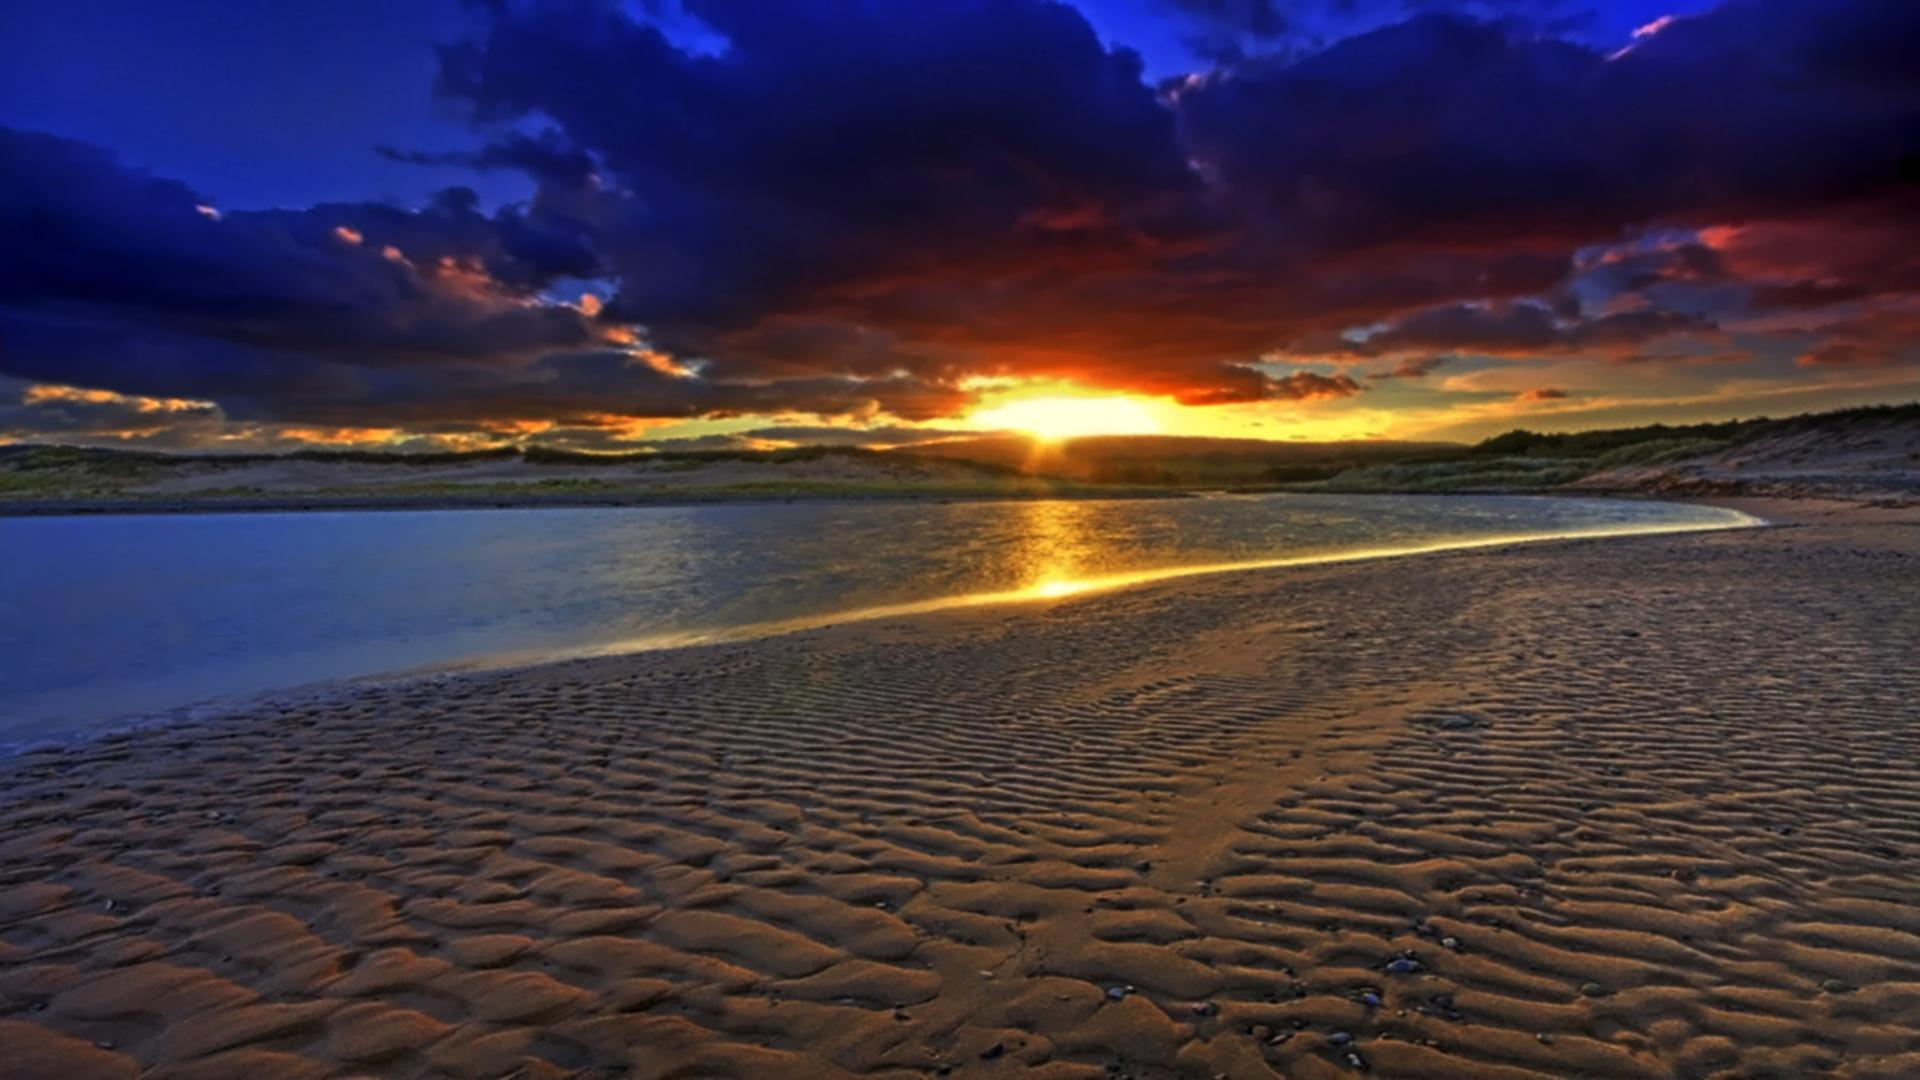 Pretty Sunset Backgrounds (17 Wallpapers) u2013 Adorable Wallpapers